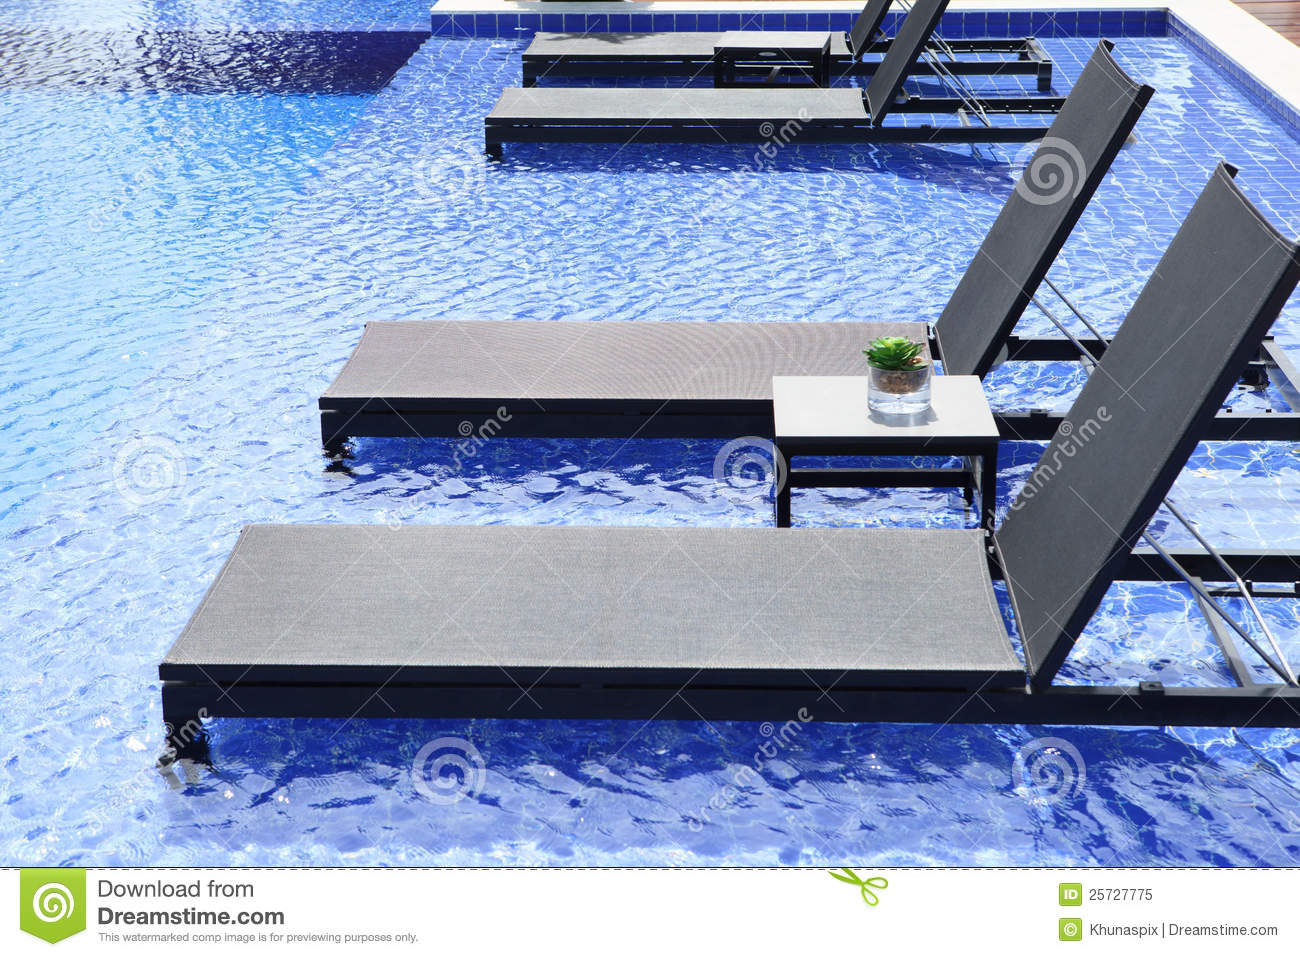 Pool Beds swimming pool and chairs bed with blue water royalty free stock